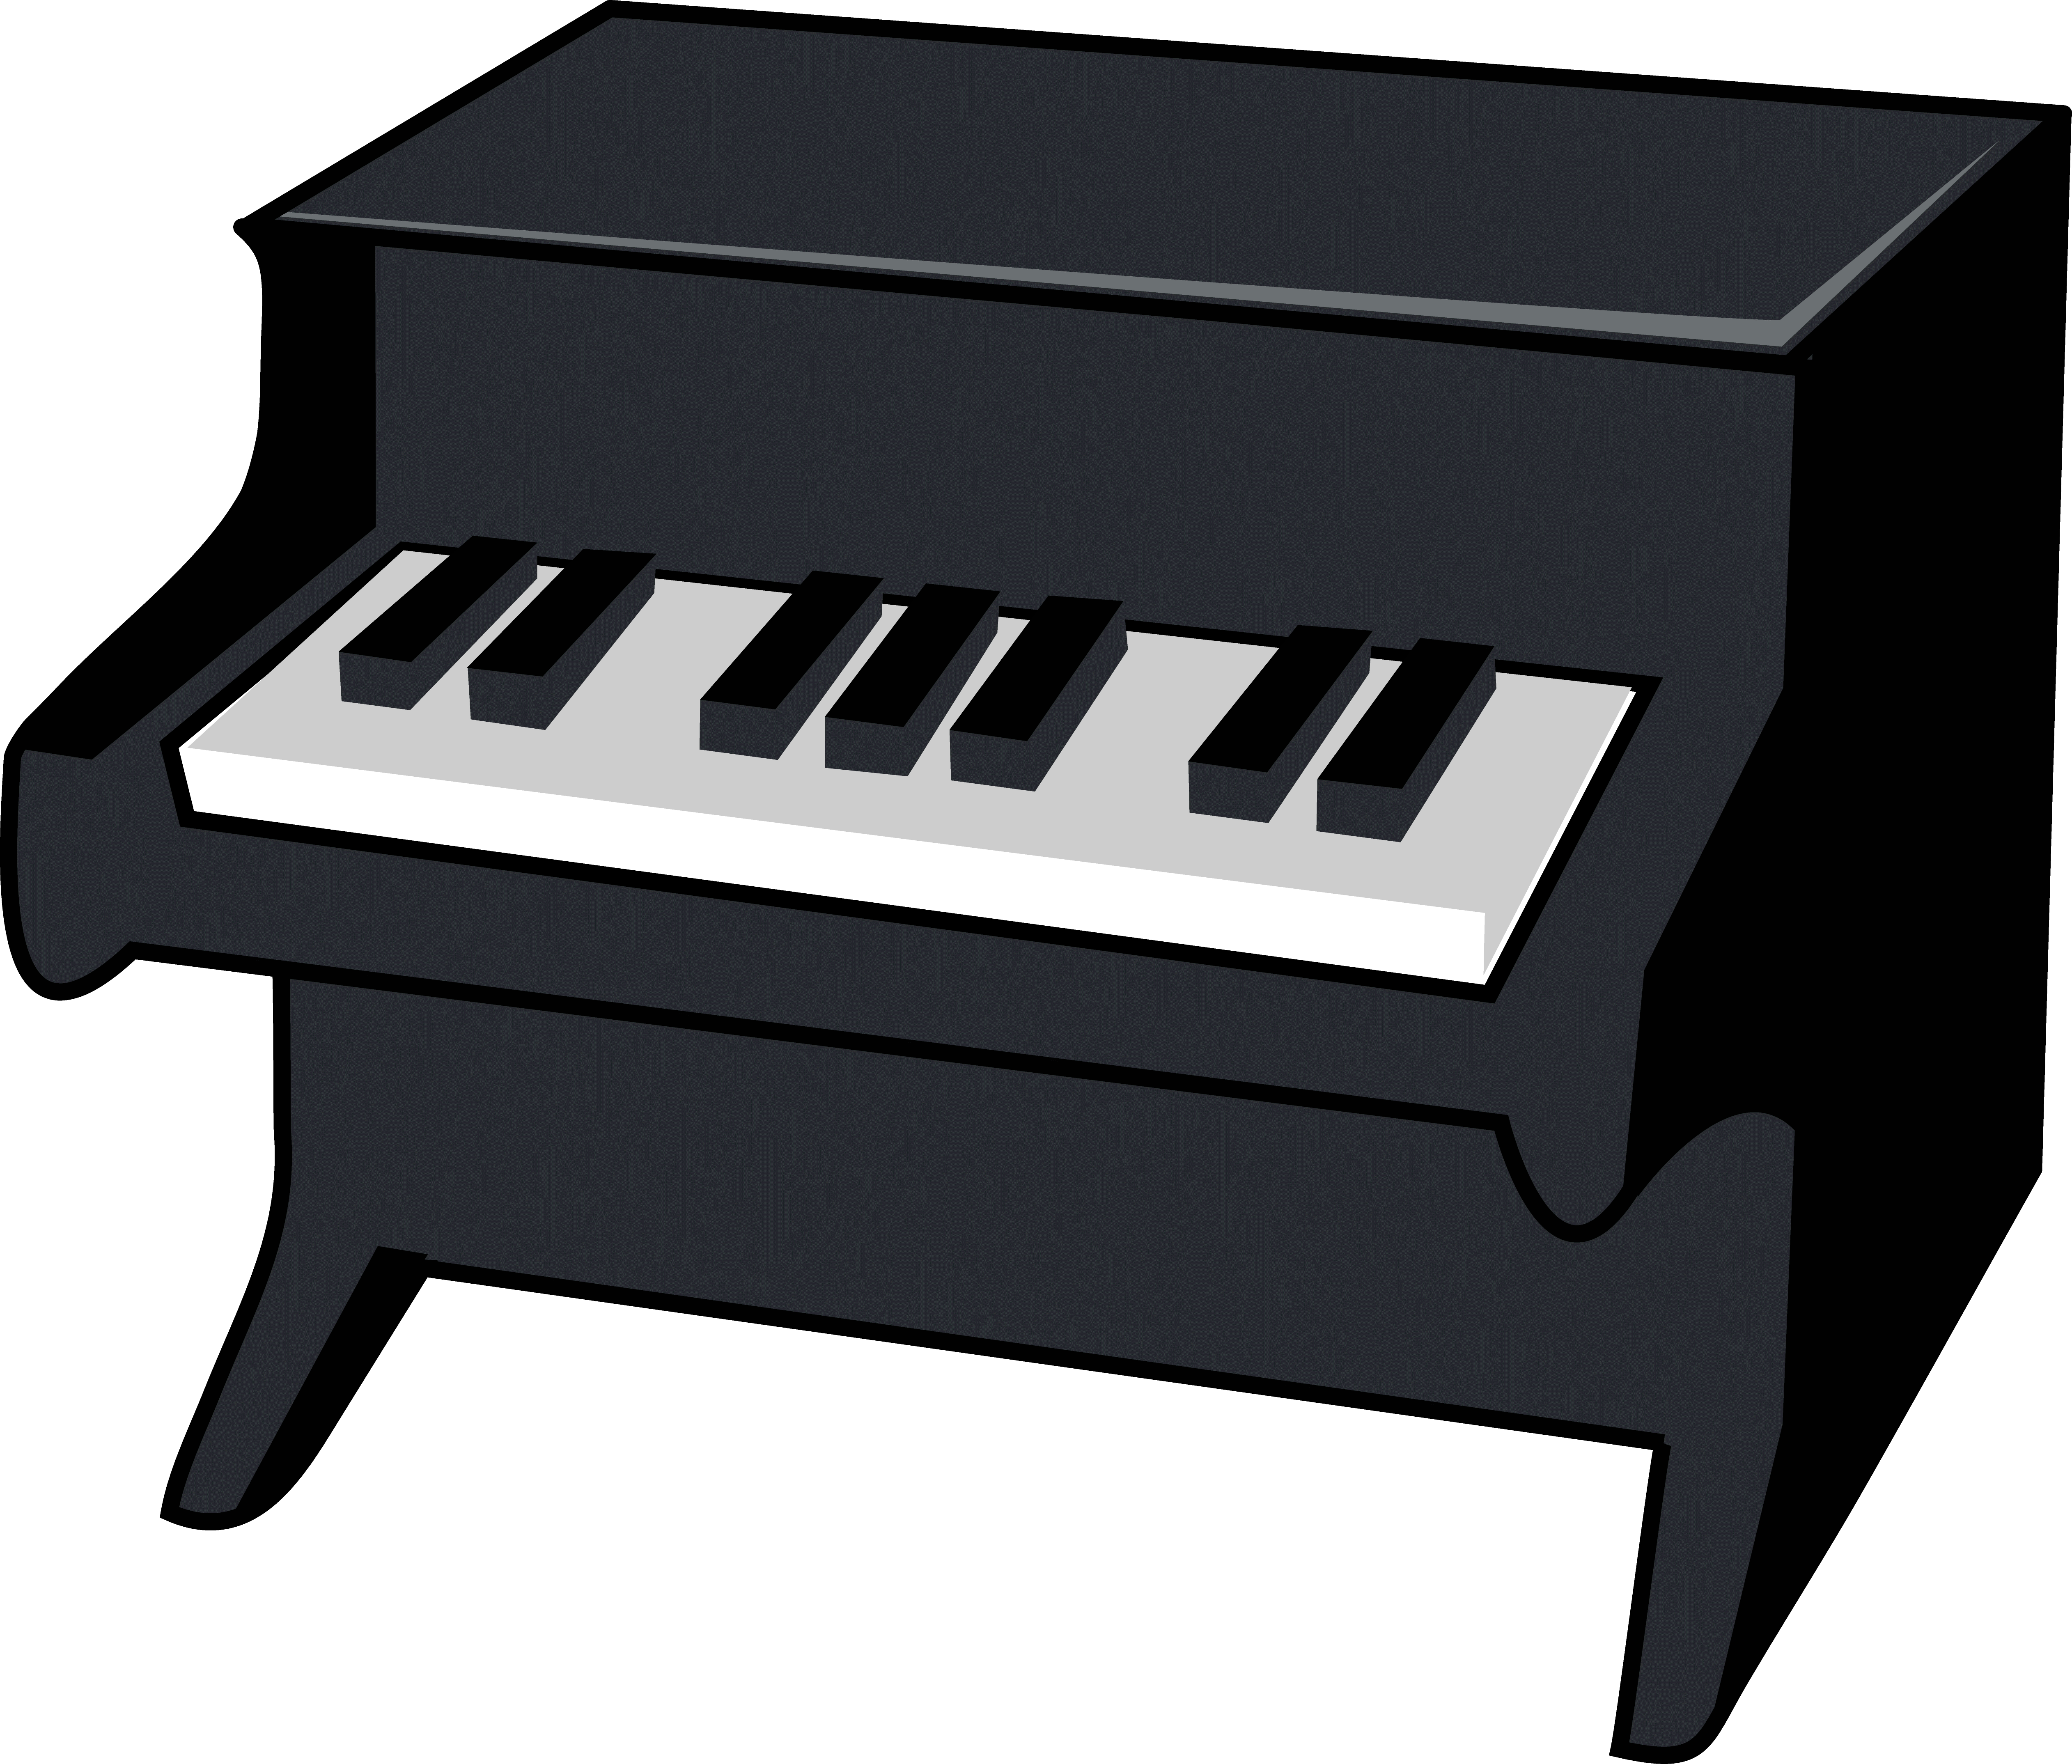 Whimsical piano clipart vector download Piano clipart free download on WebStockReview vector download